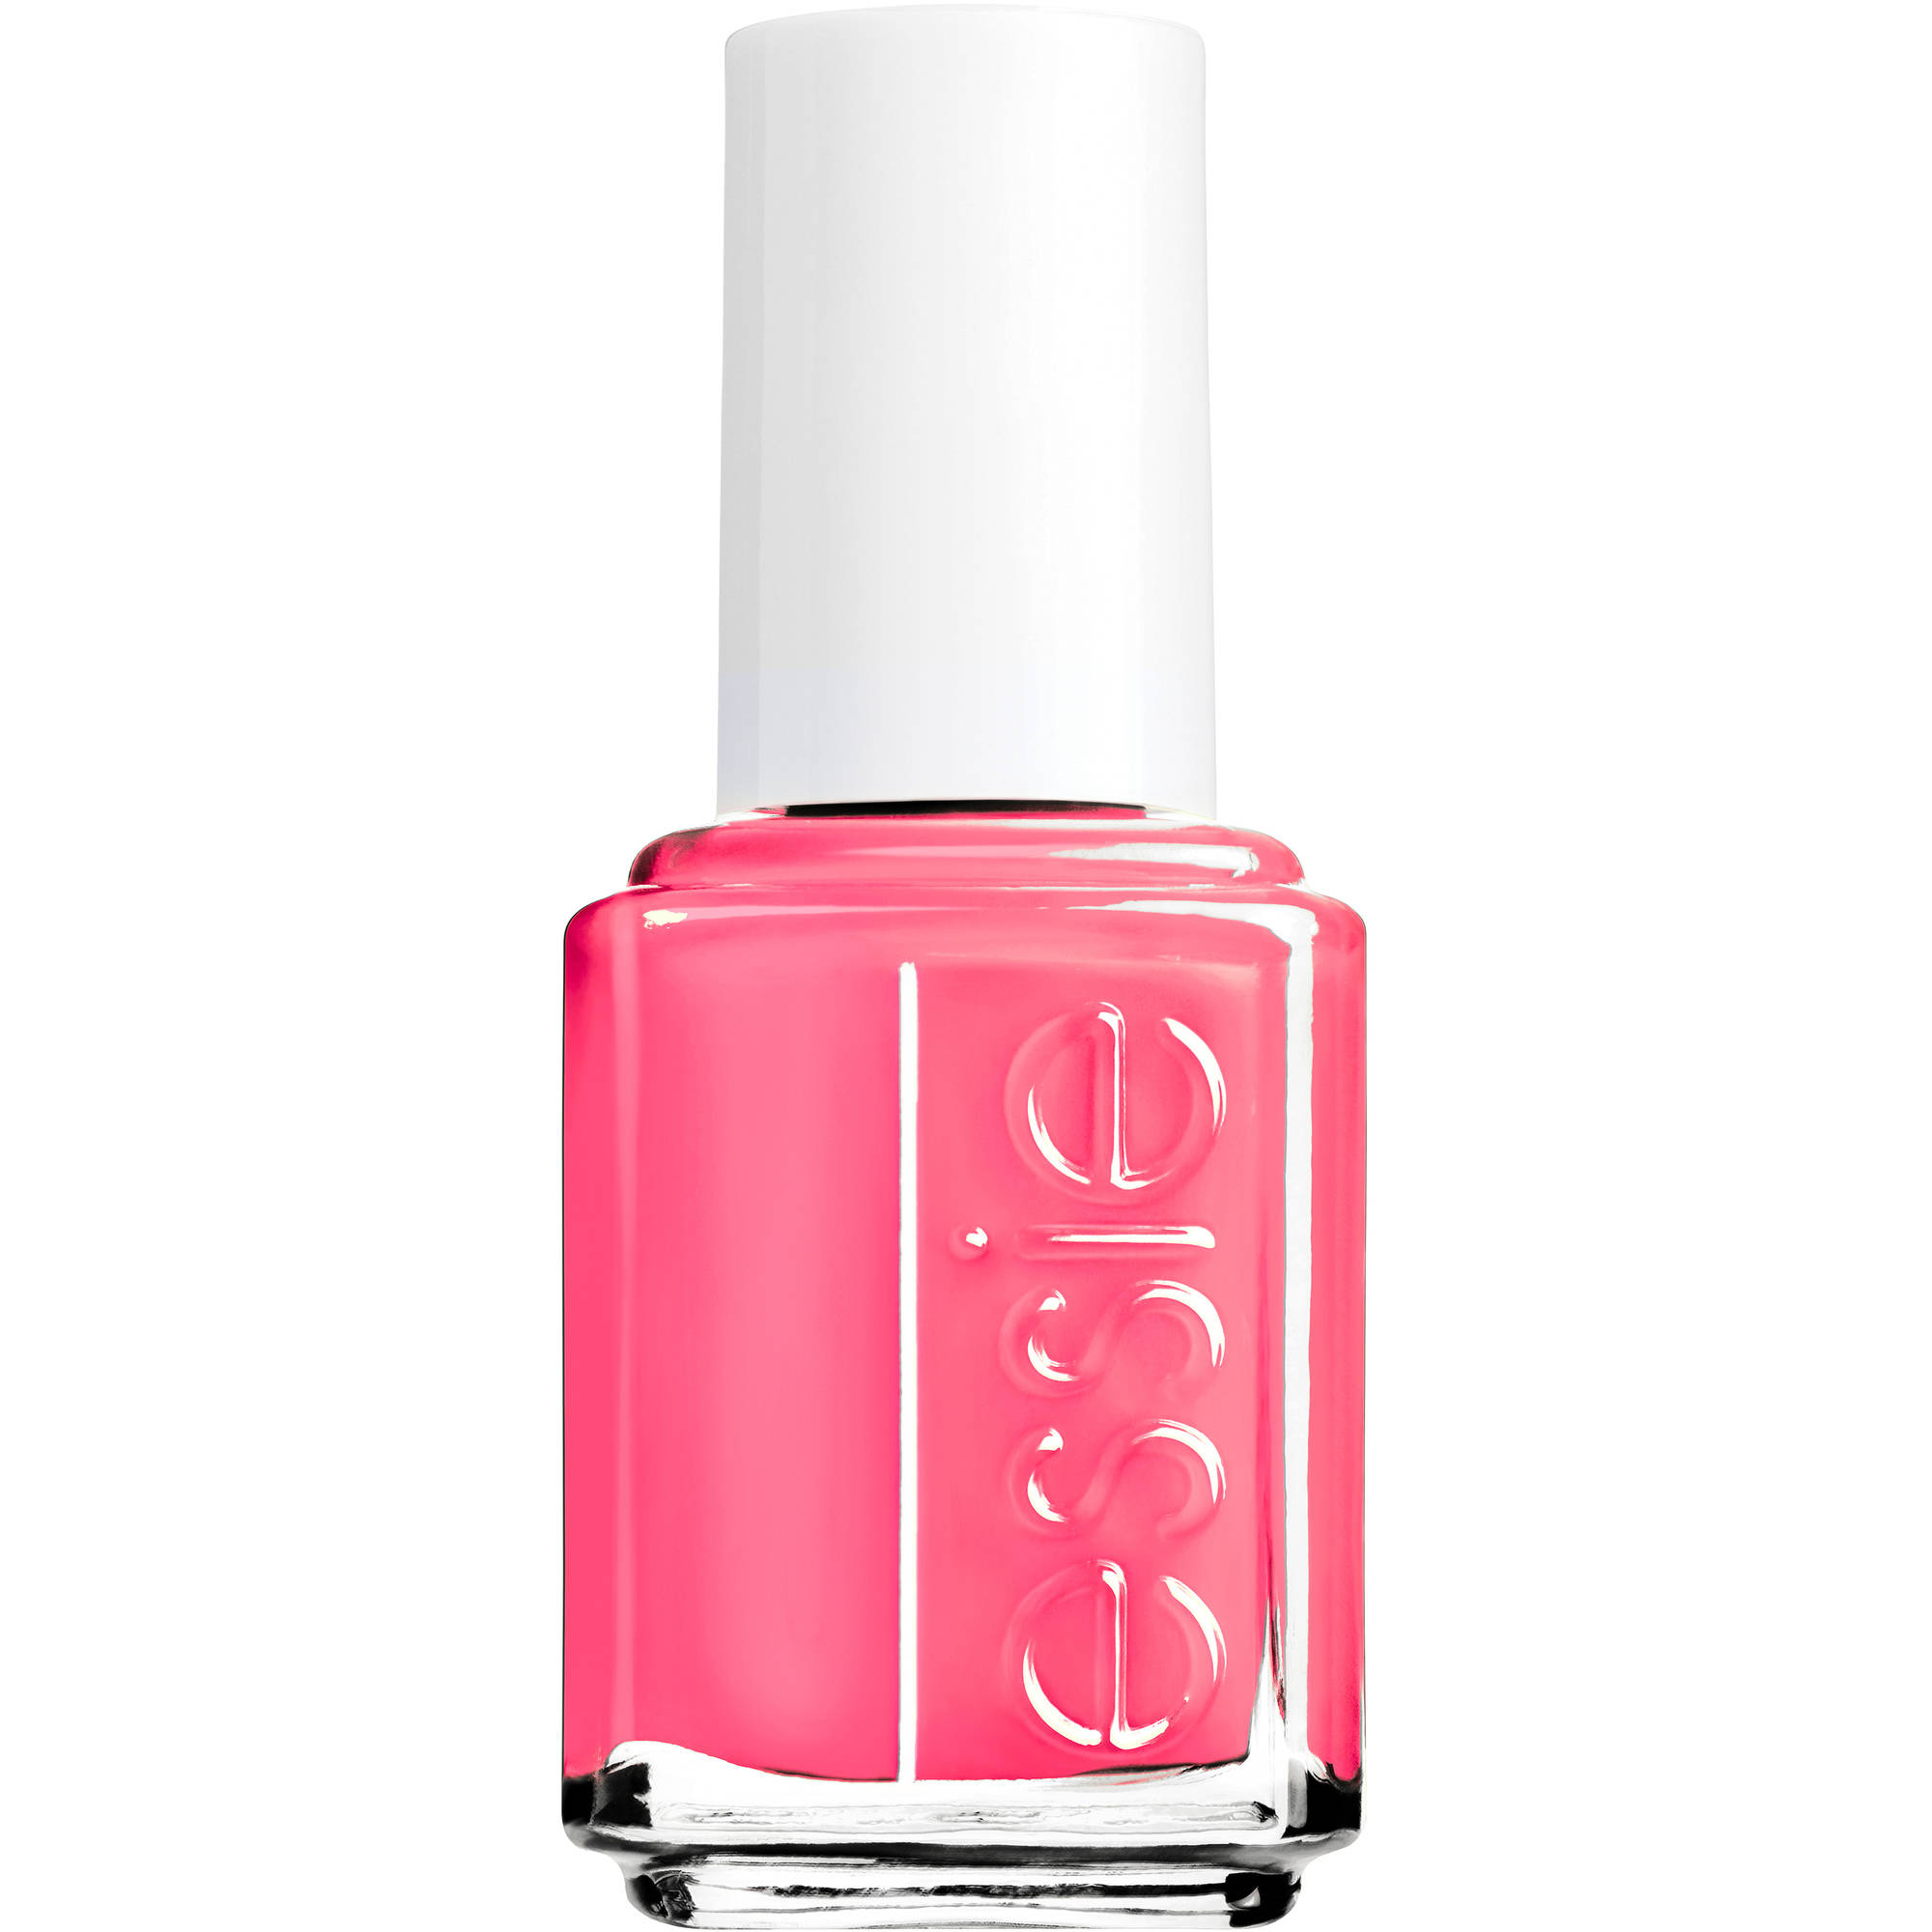 Essie Nail Polish, Guilty Pleasures, 0.46 fl oz